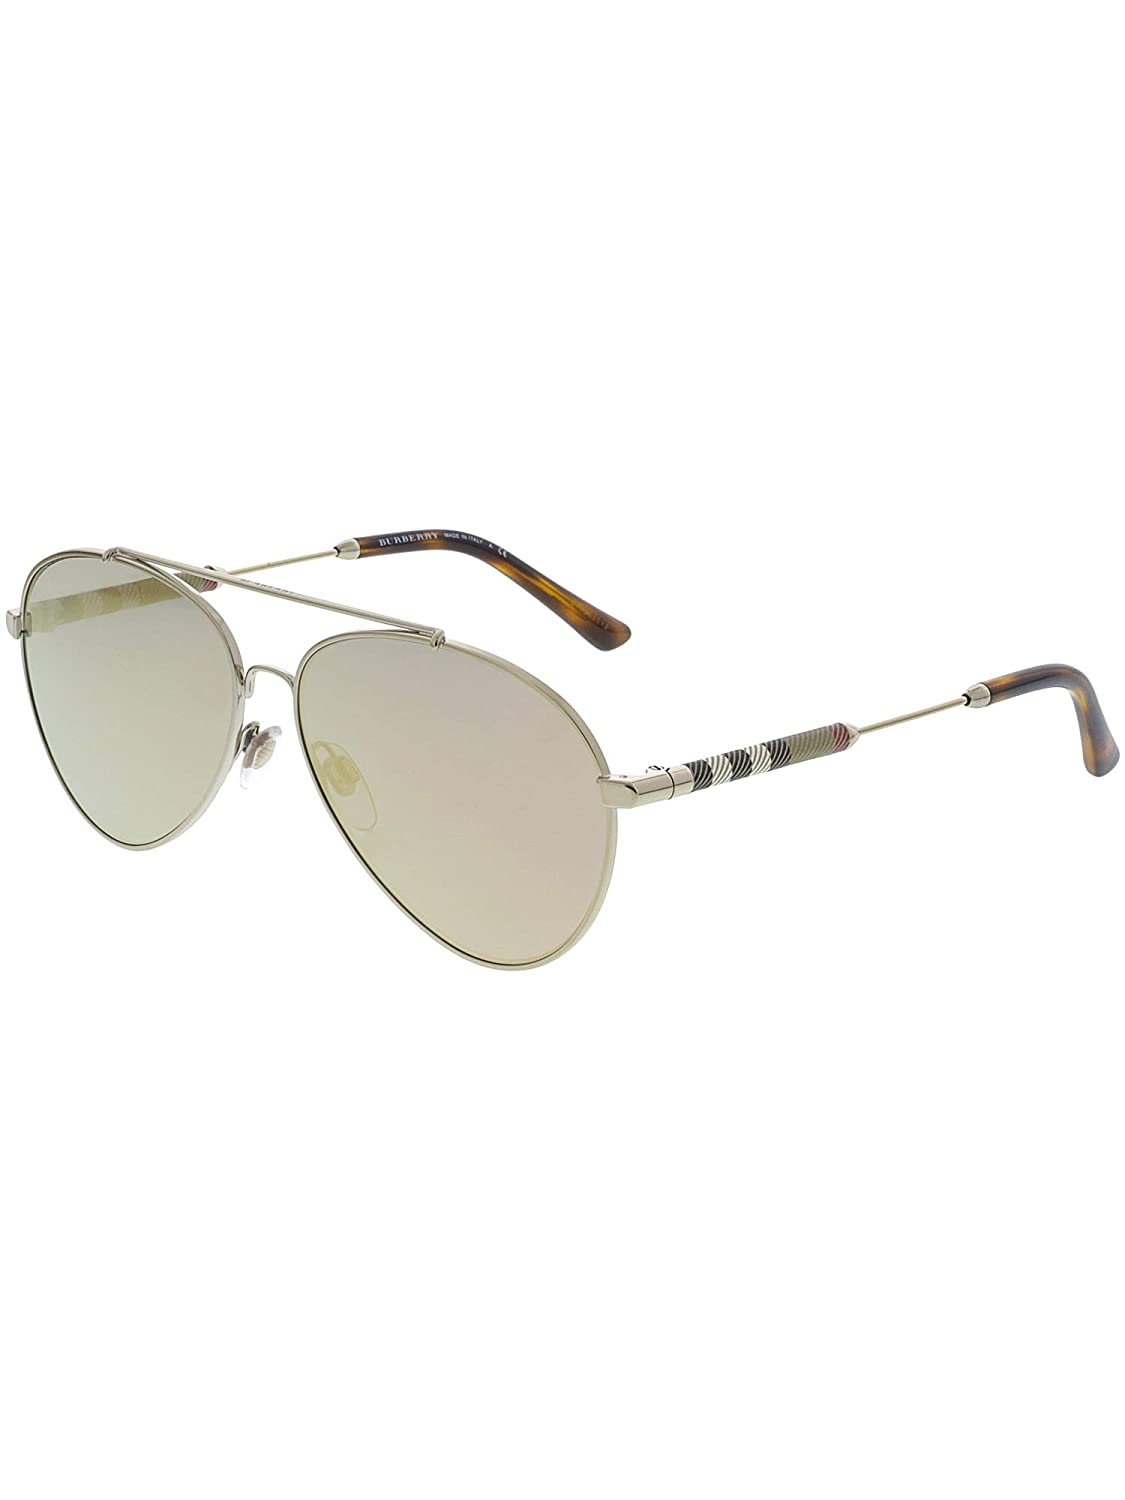 0f6ac4f91386 Burberry Womens Women s 57Mm Sunglasses at Amazon Women s Clothing store